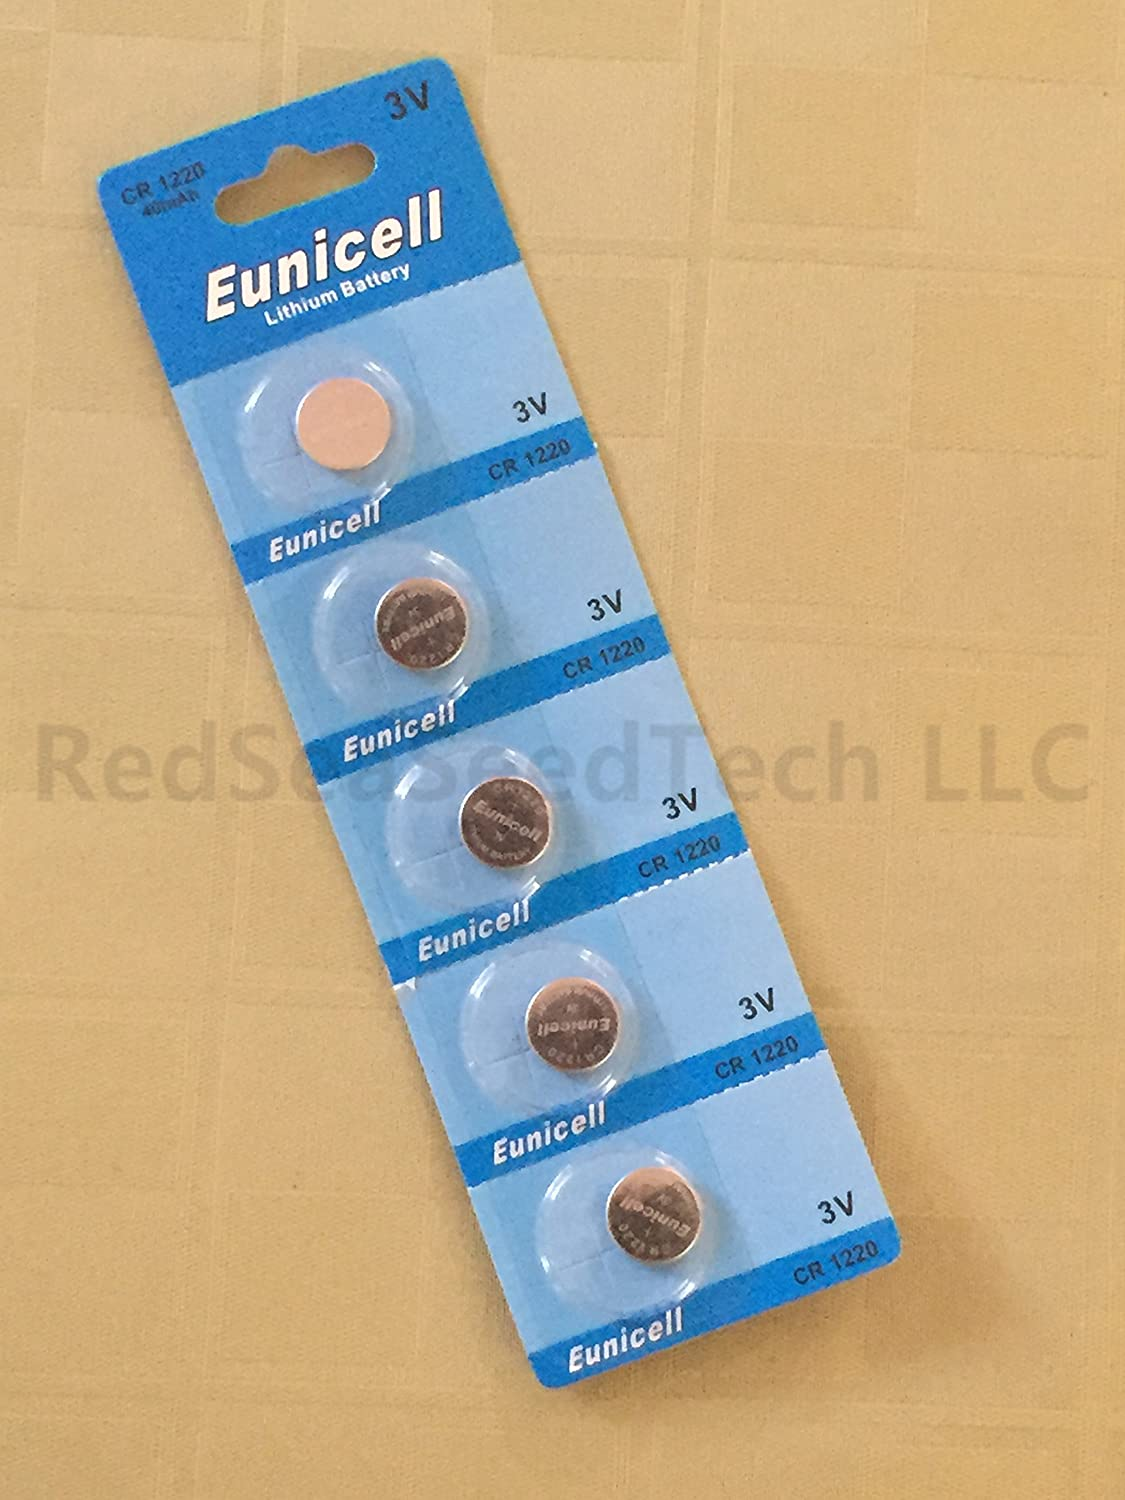 Eunicell CR1220 5012LC Lithium Blister Pack 3V 3 Volt Coin Cell Batteries 20 pcs